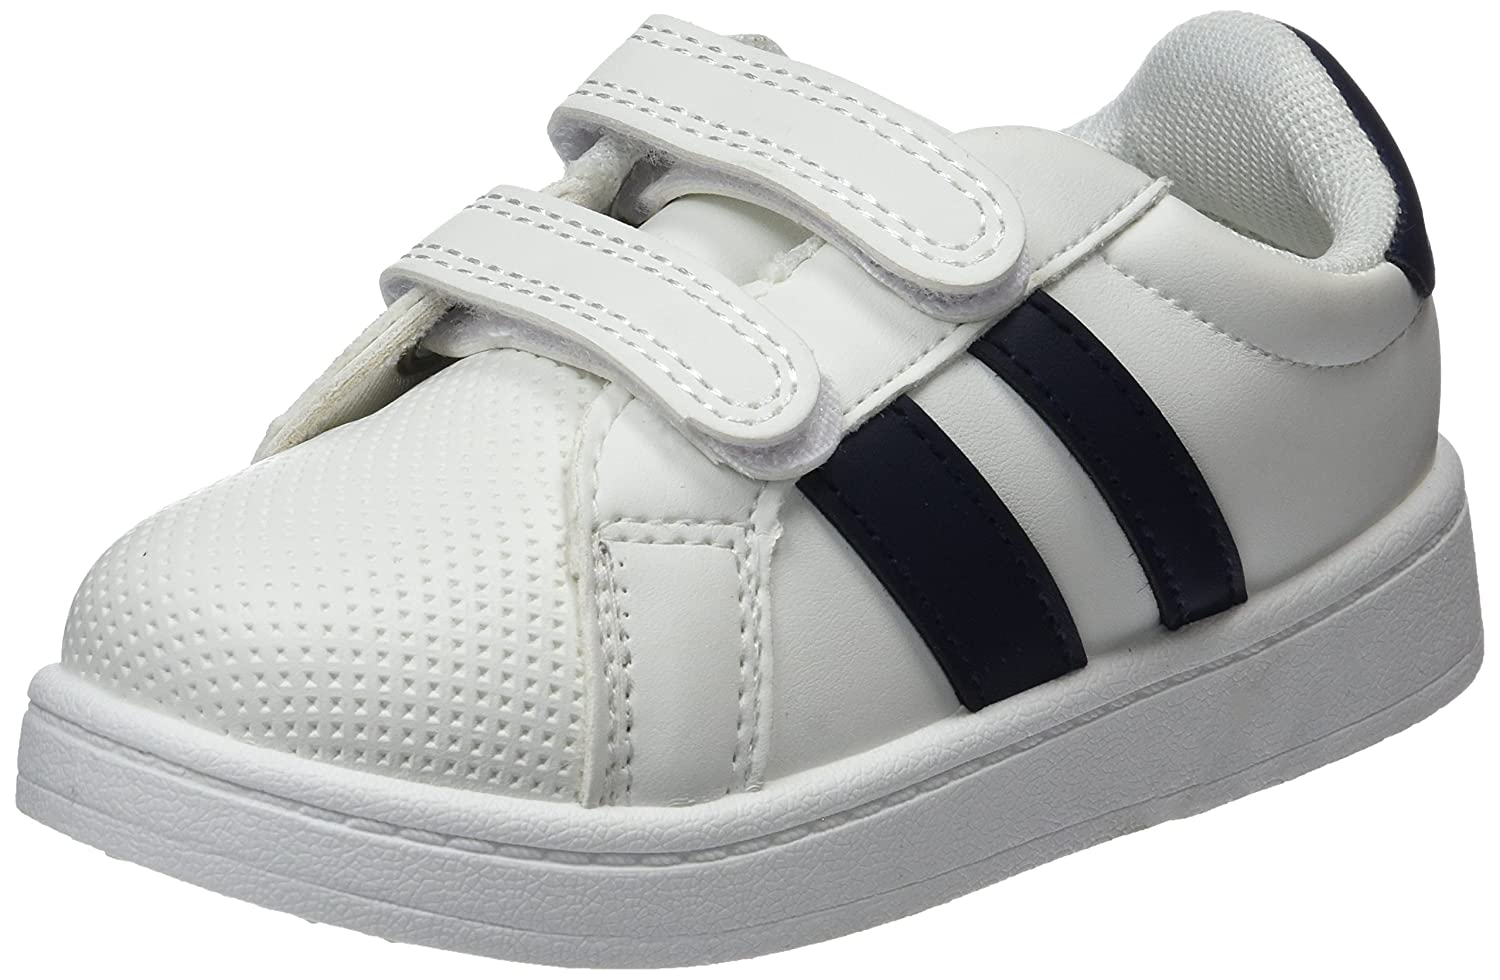 ZIPPY Zapatillas Con Tiras Para Niã±o, Baskets Slip-on garçon